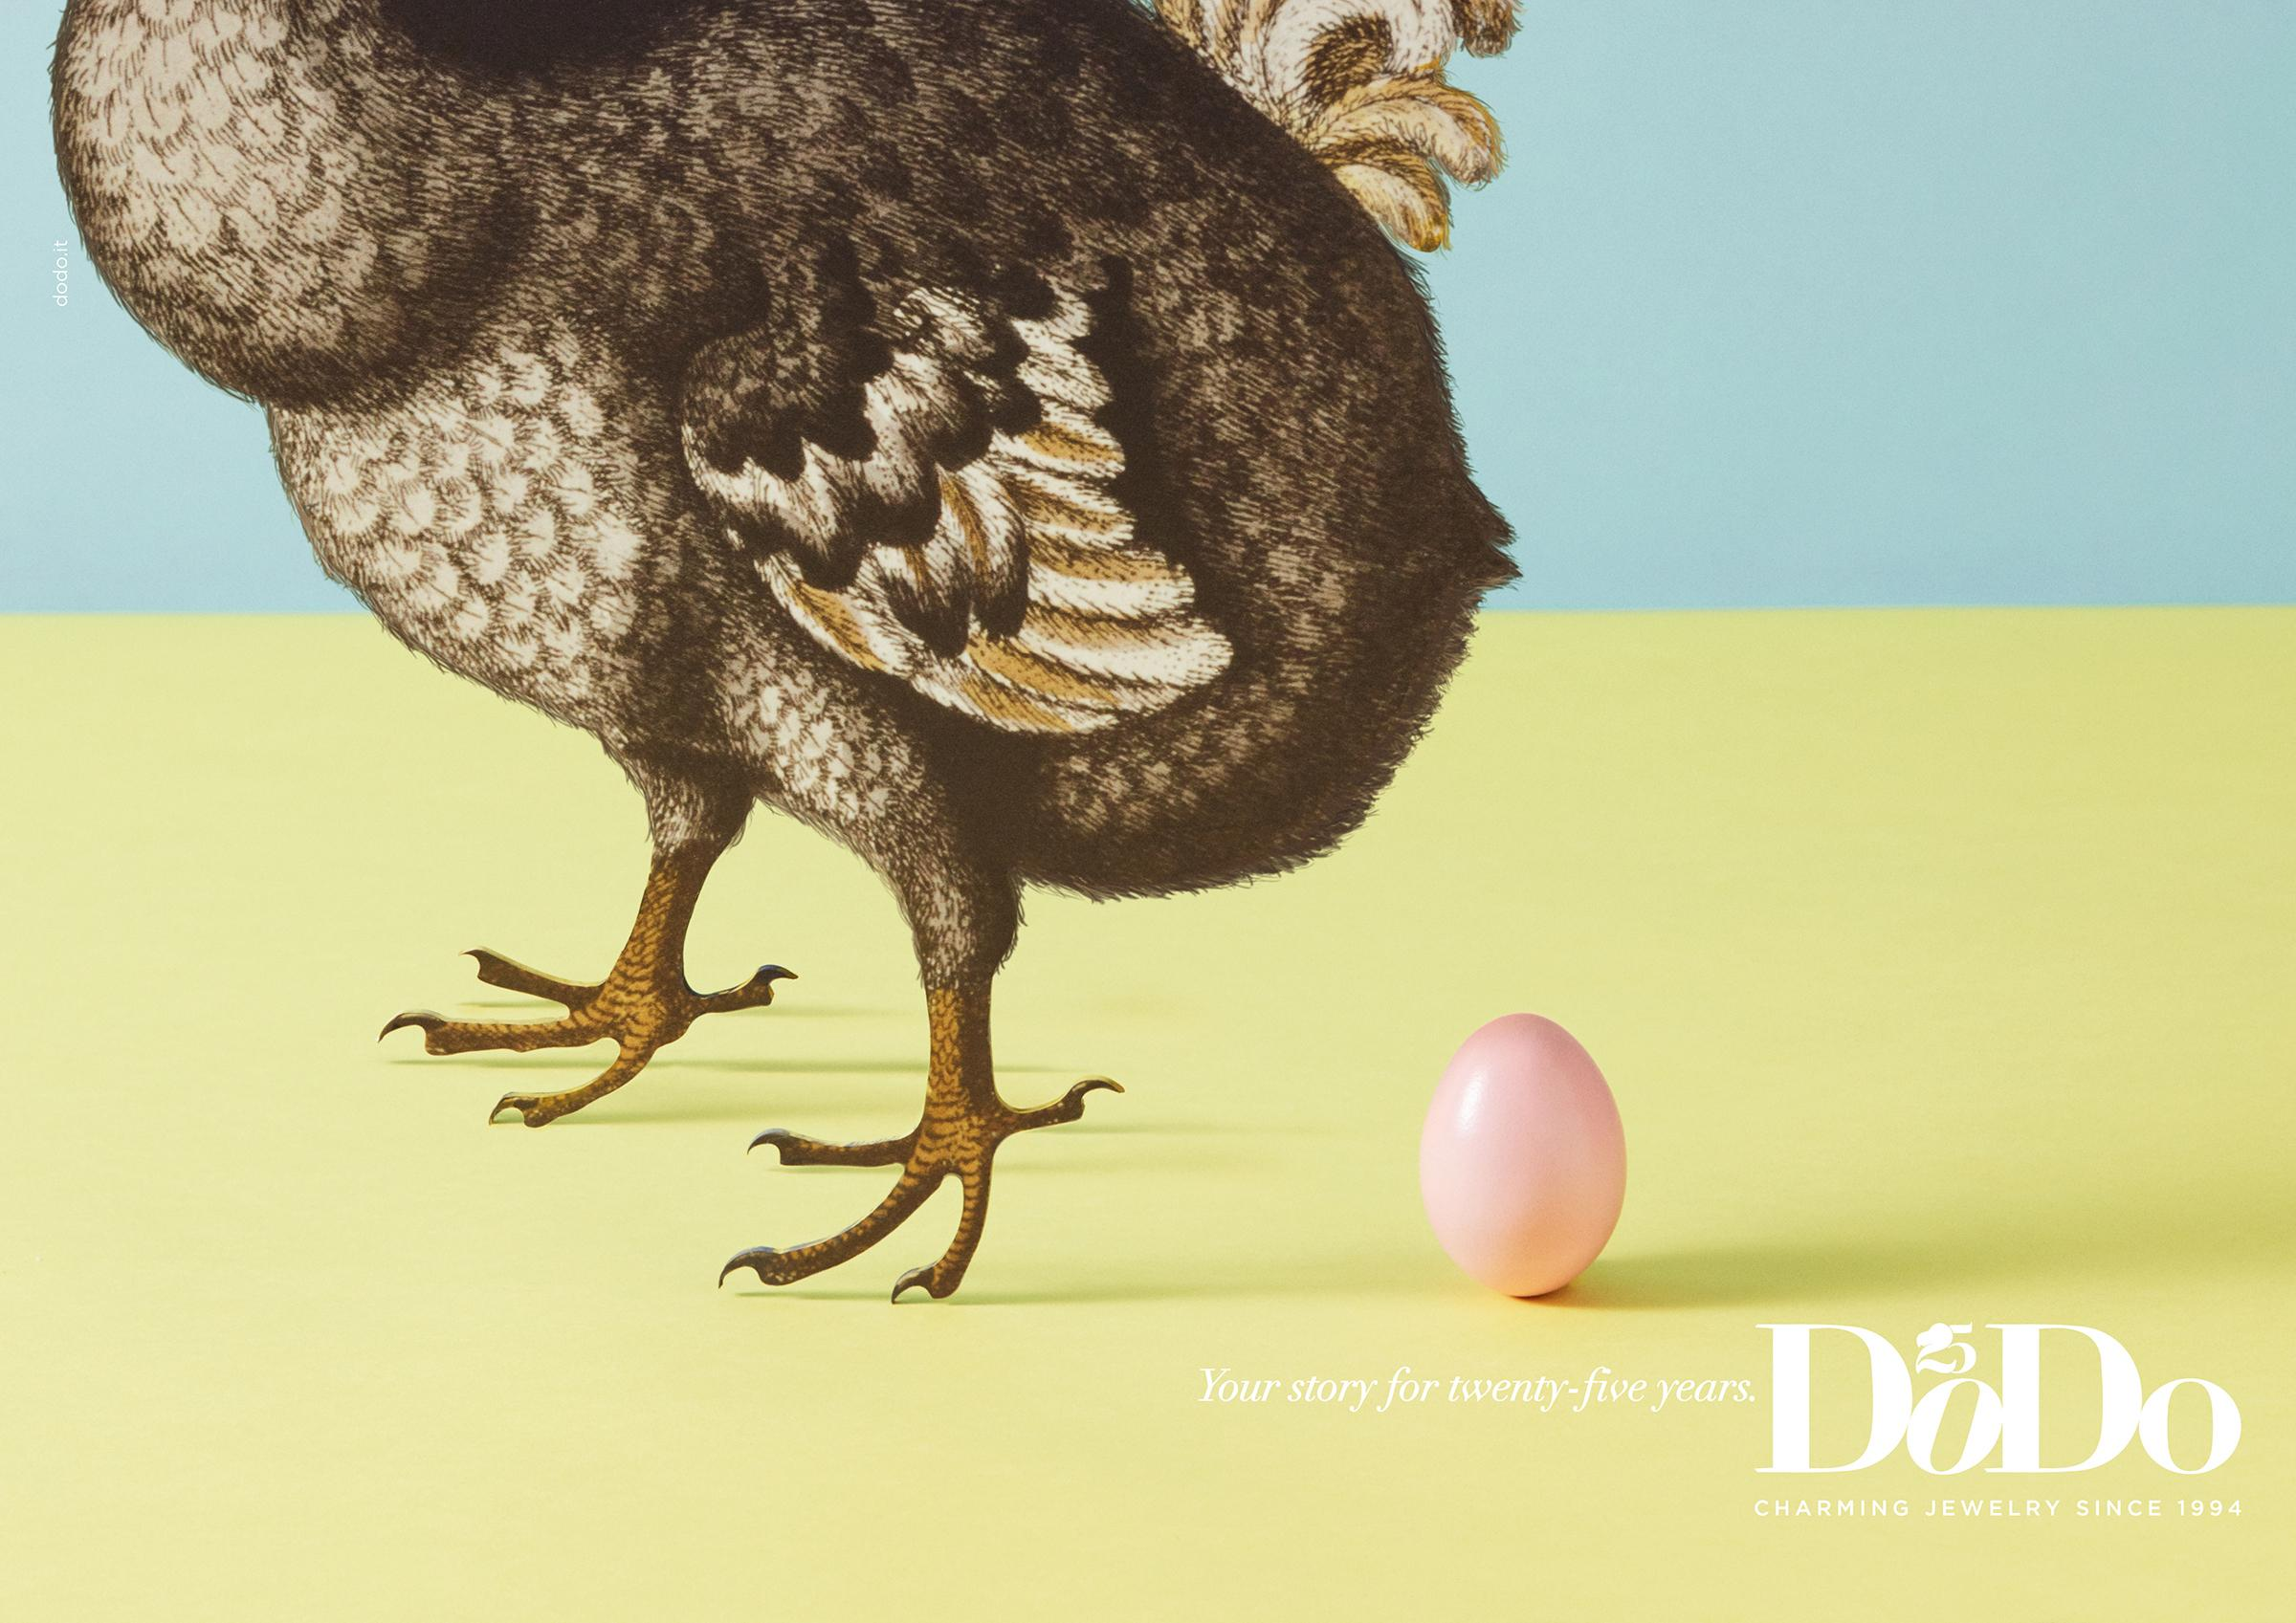 Pomellato: Institutional Campaign DoDo